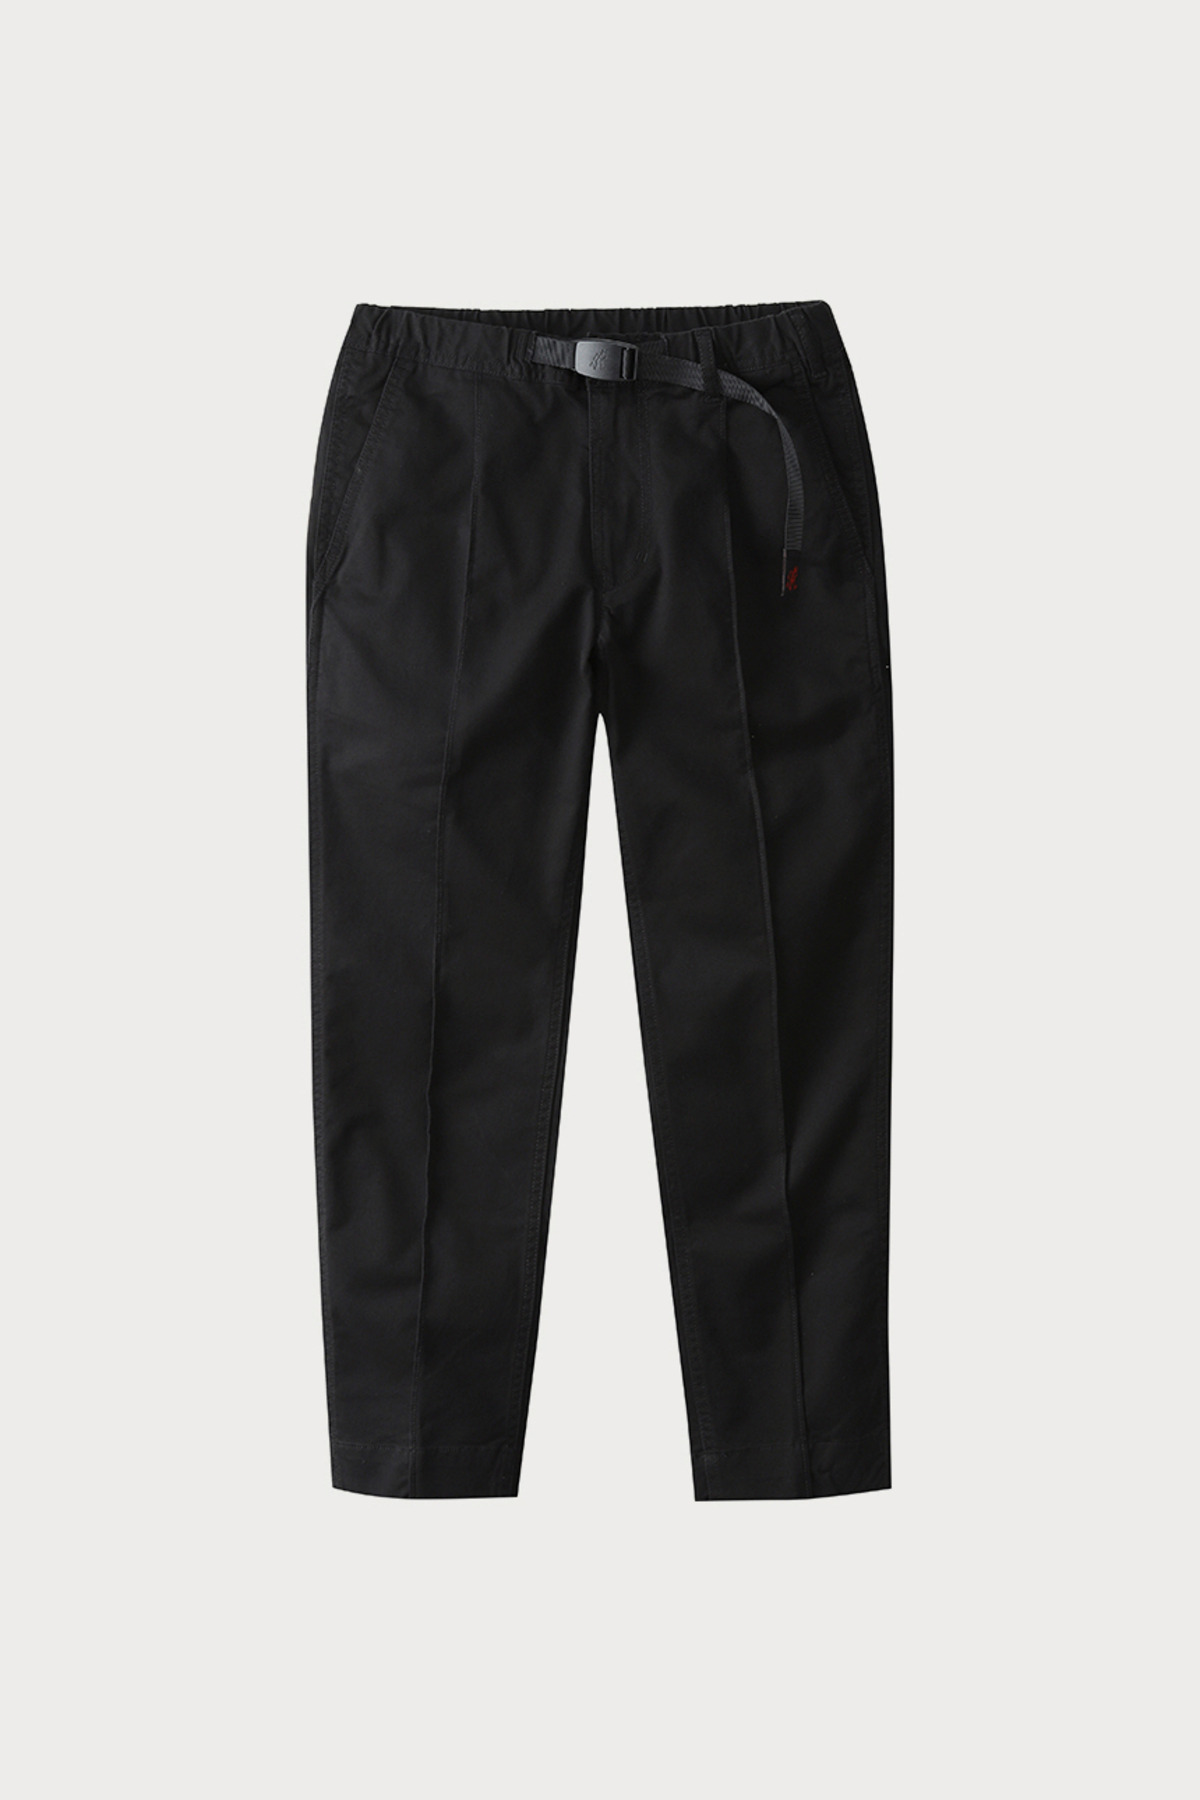 PINTUCK PANTS BLACK